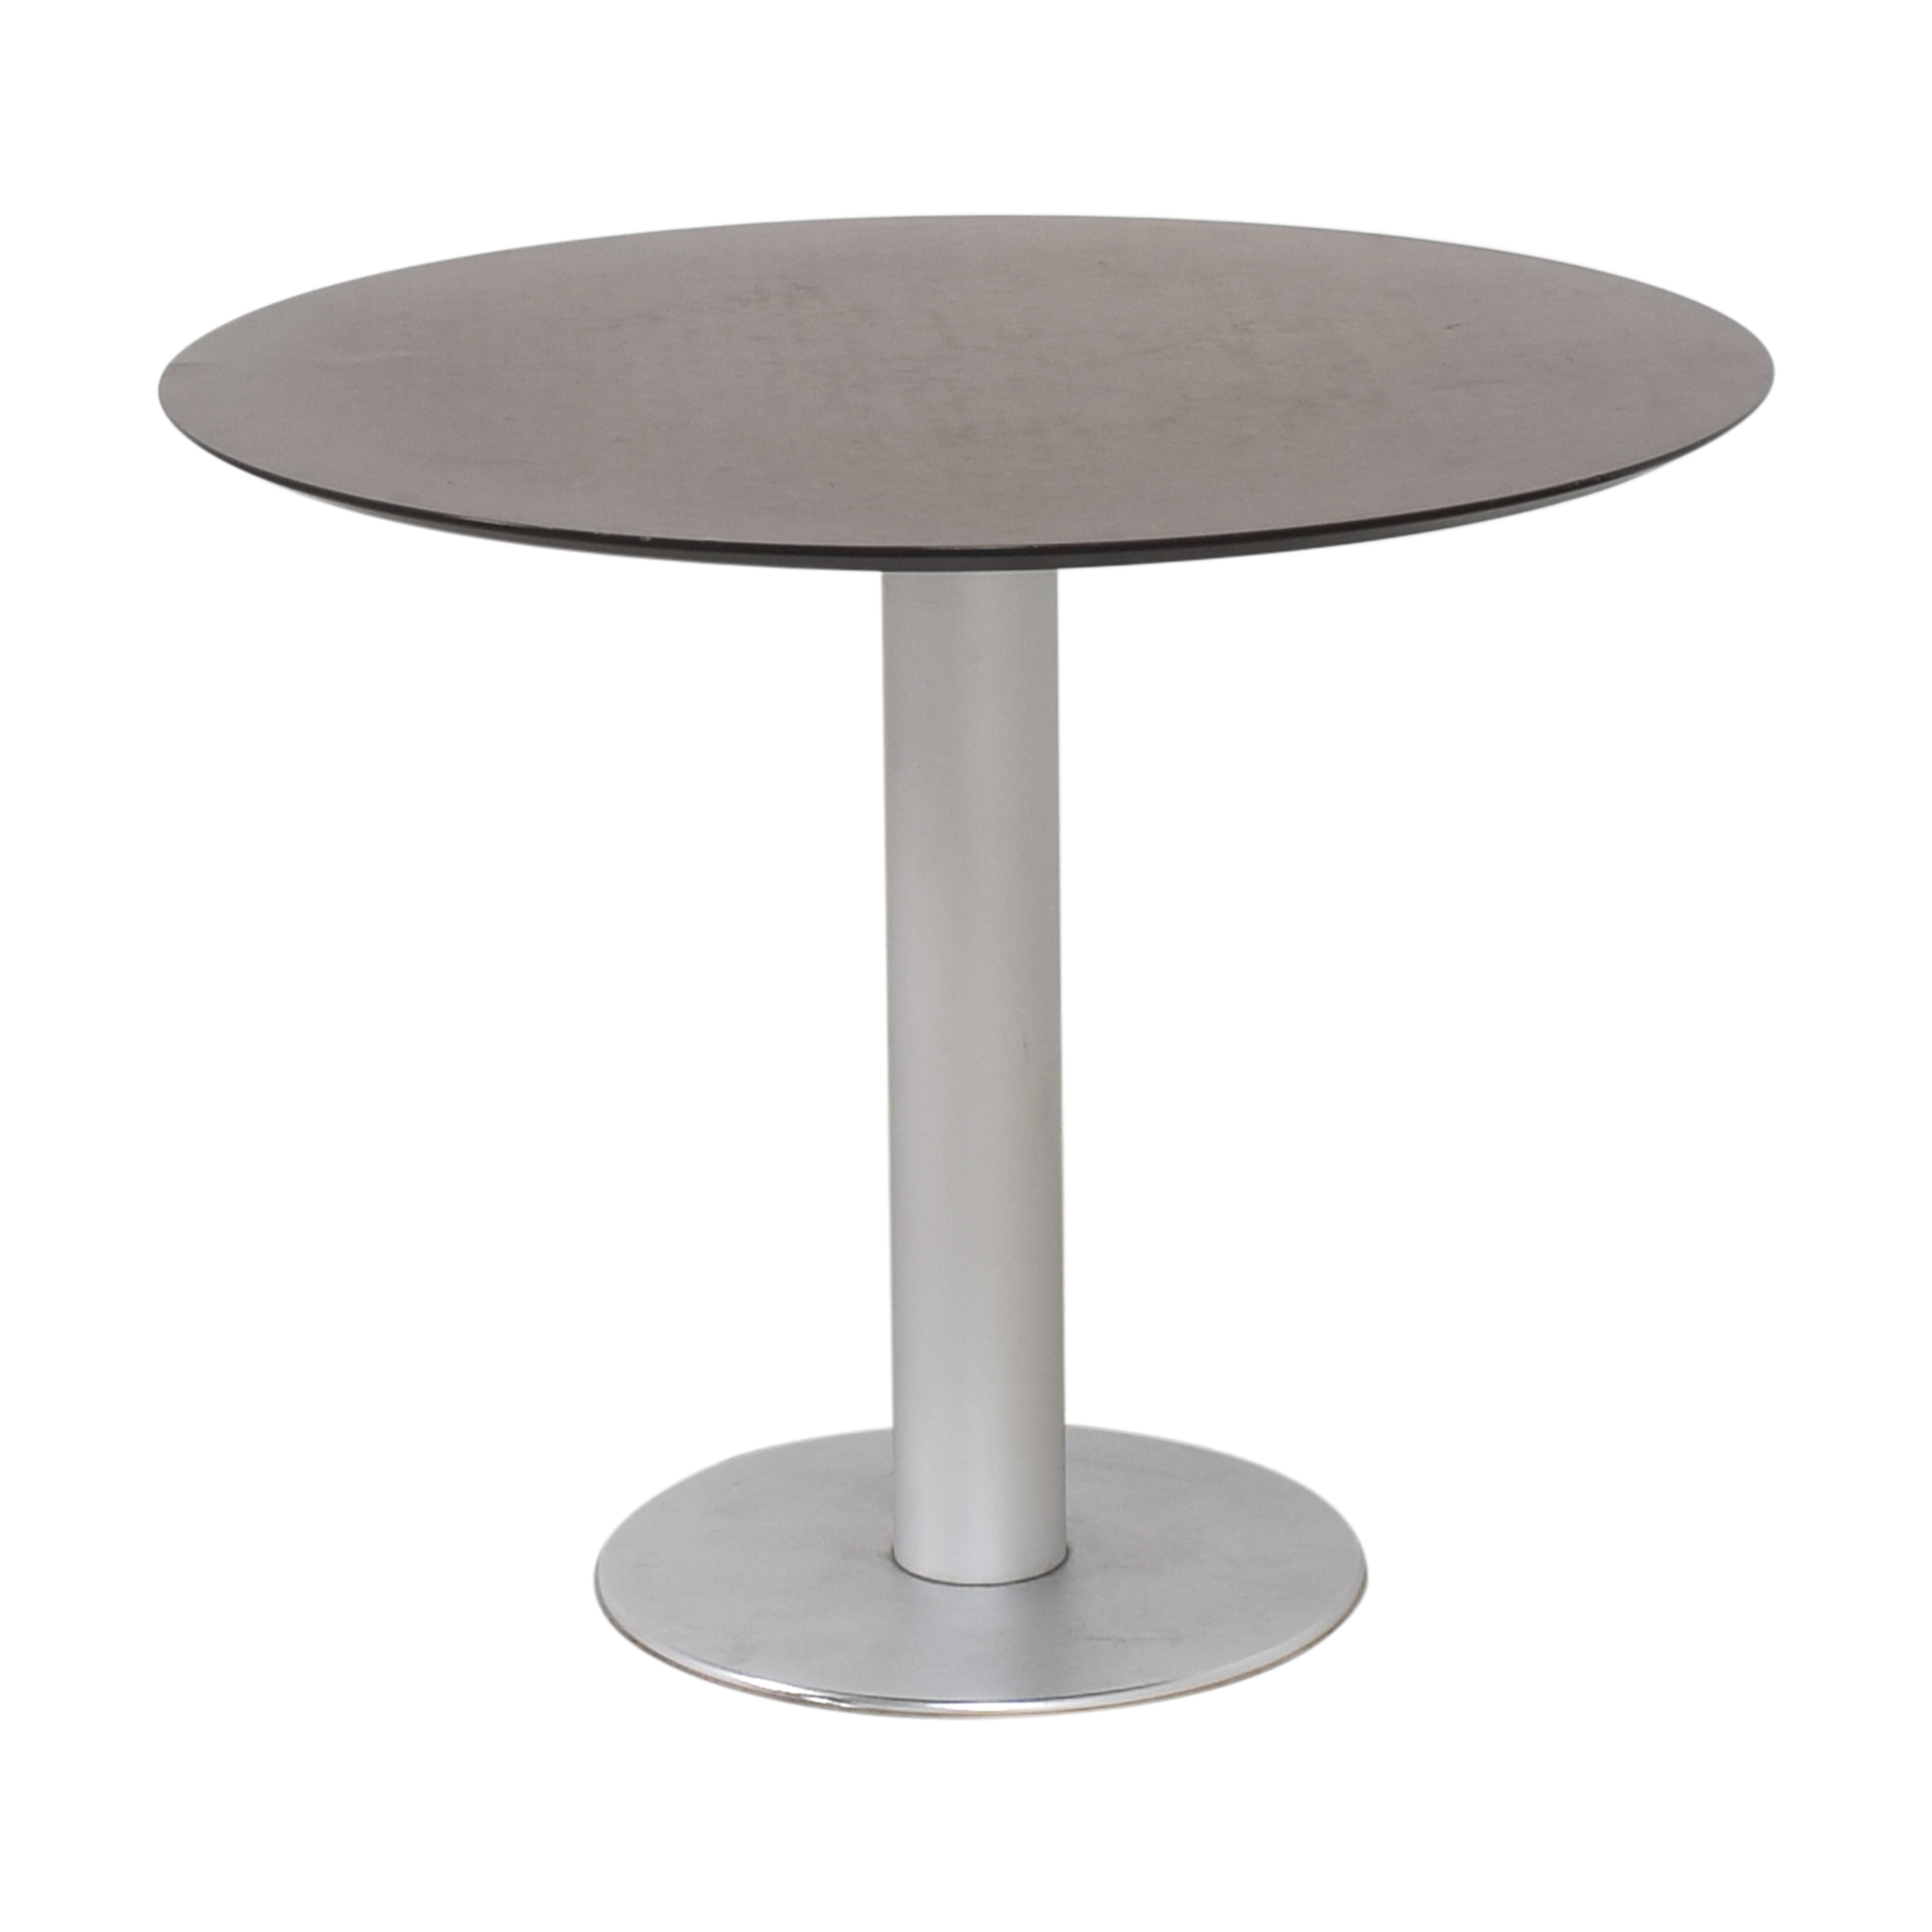 STUA STUA Zero Dining Table for sale